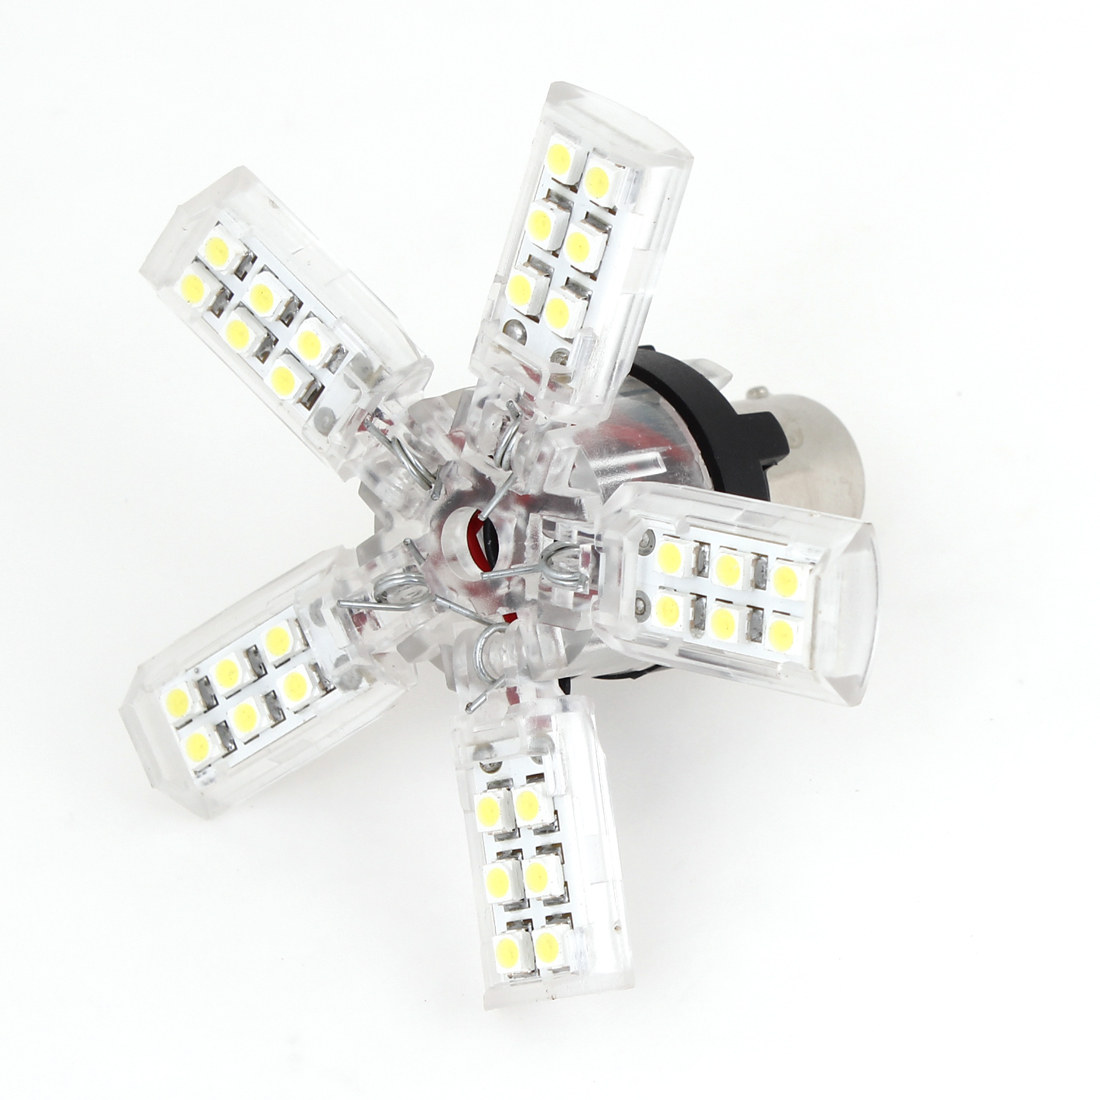 1156 White 40 LED 1210 SMD Spider Lite Turn Light Bulb for Auto Car